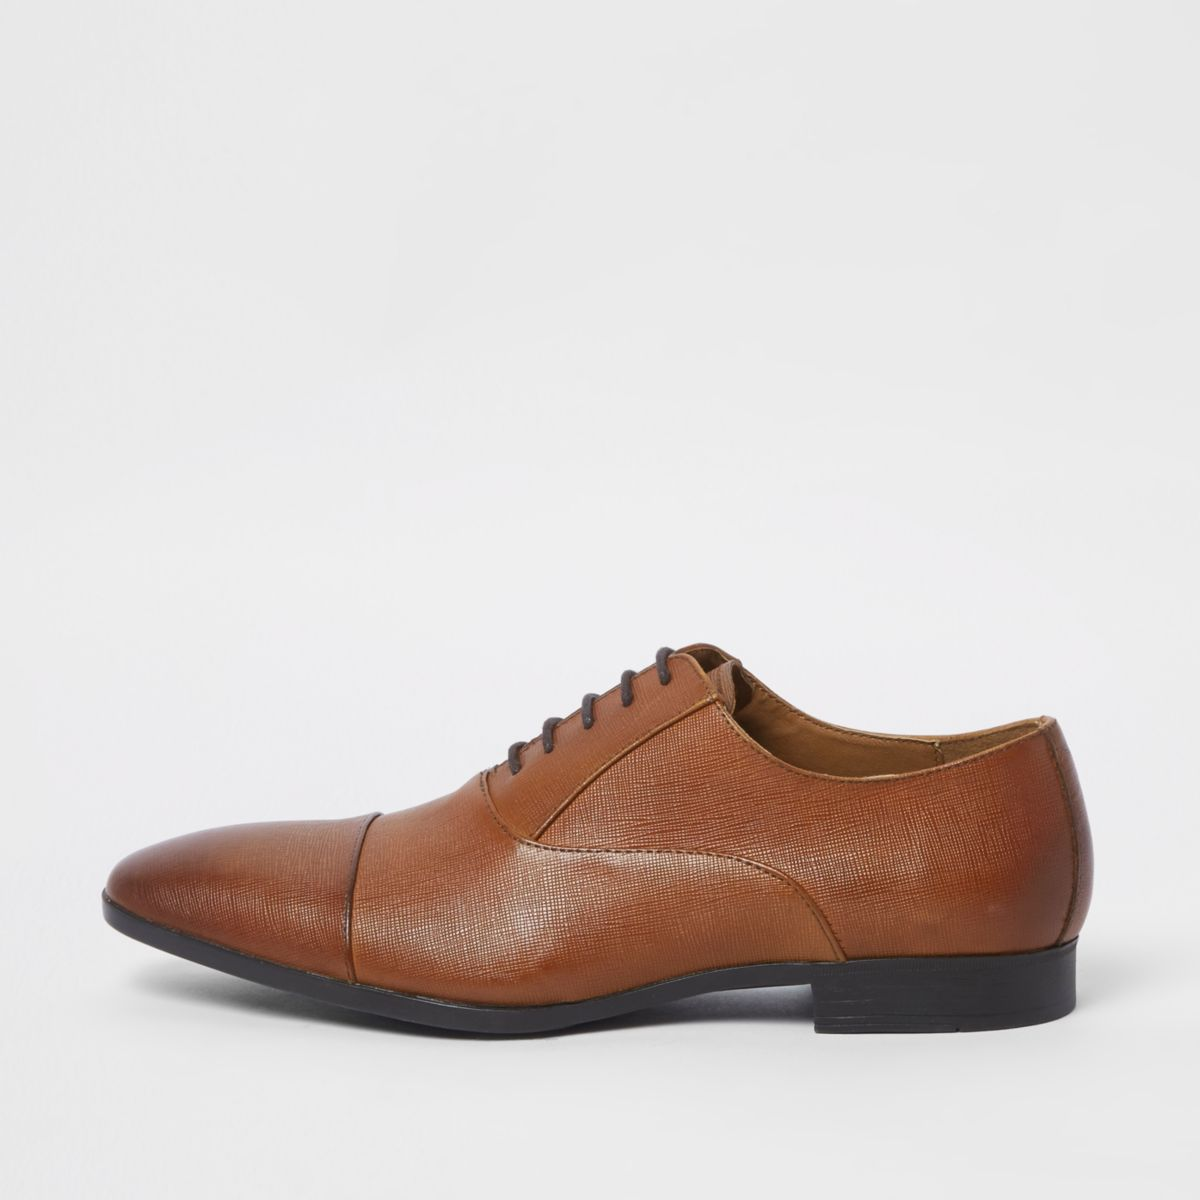 Brown leather toe cap Oxford shoes